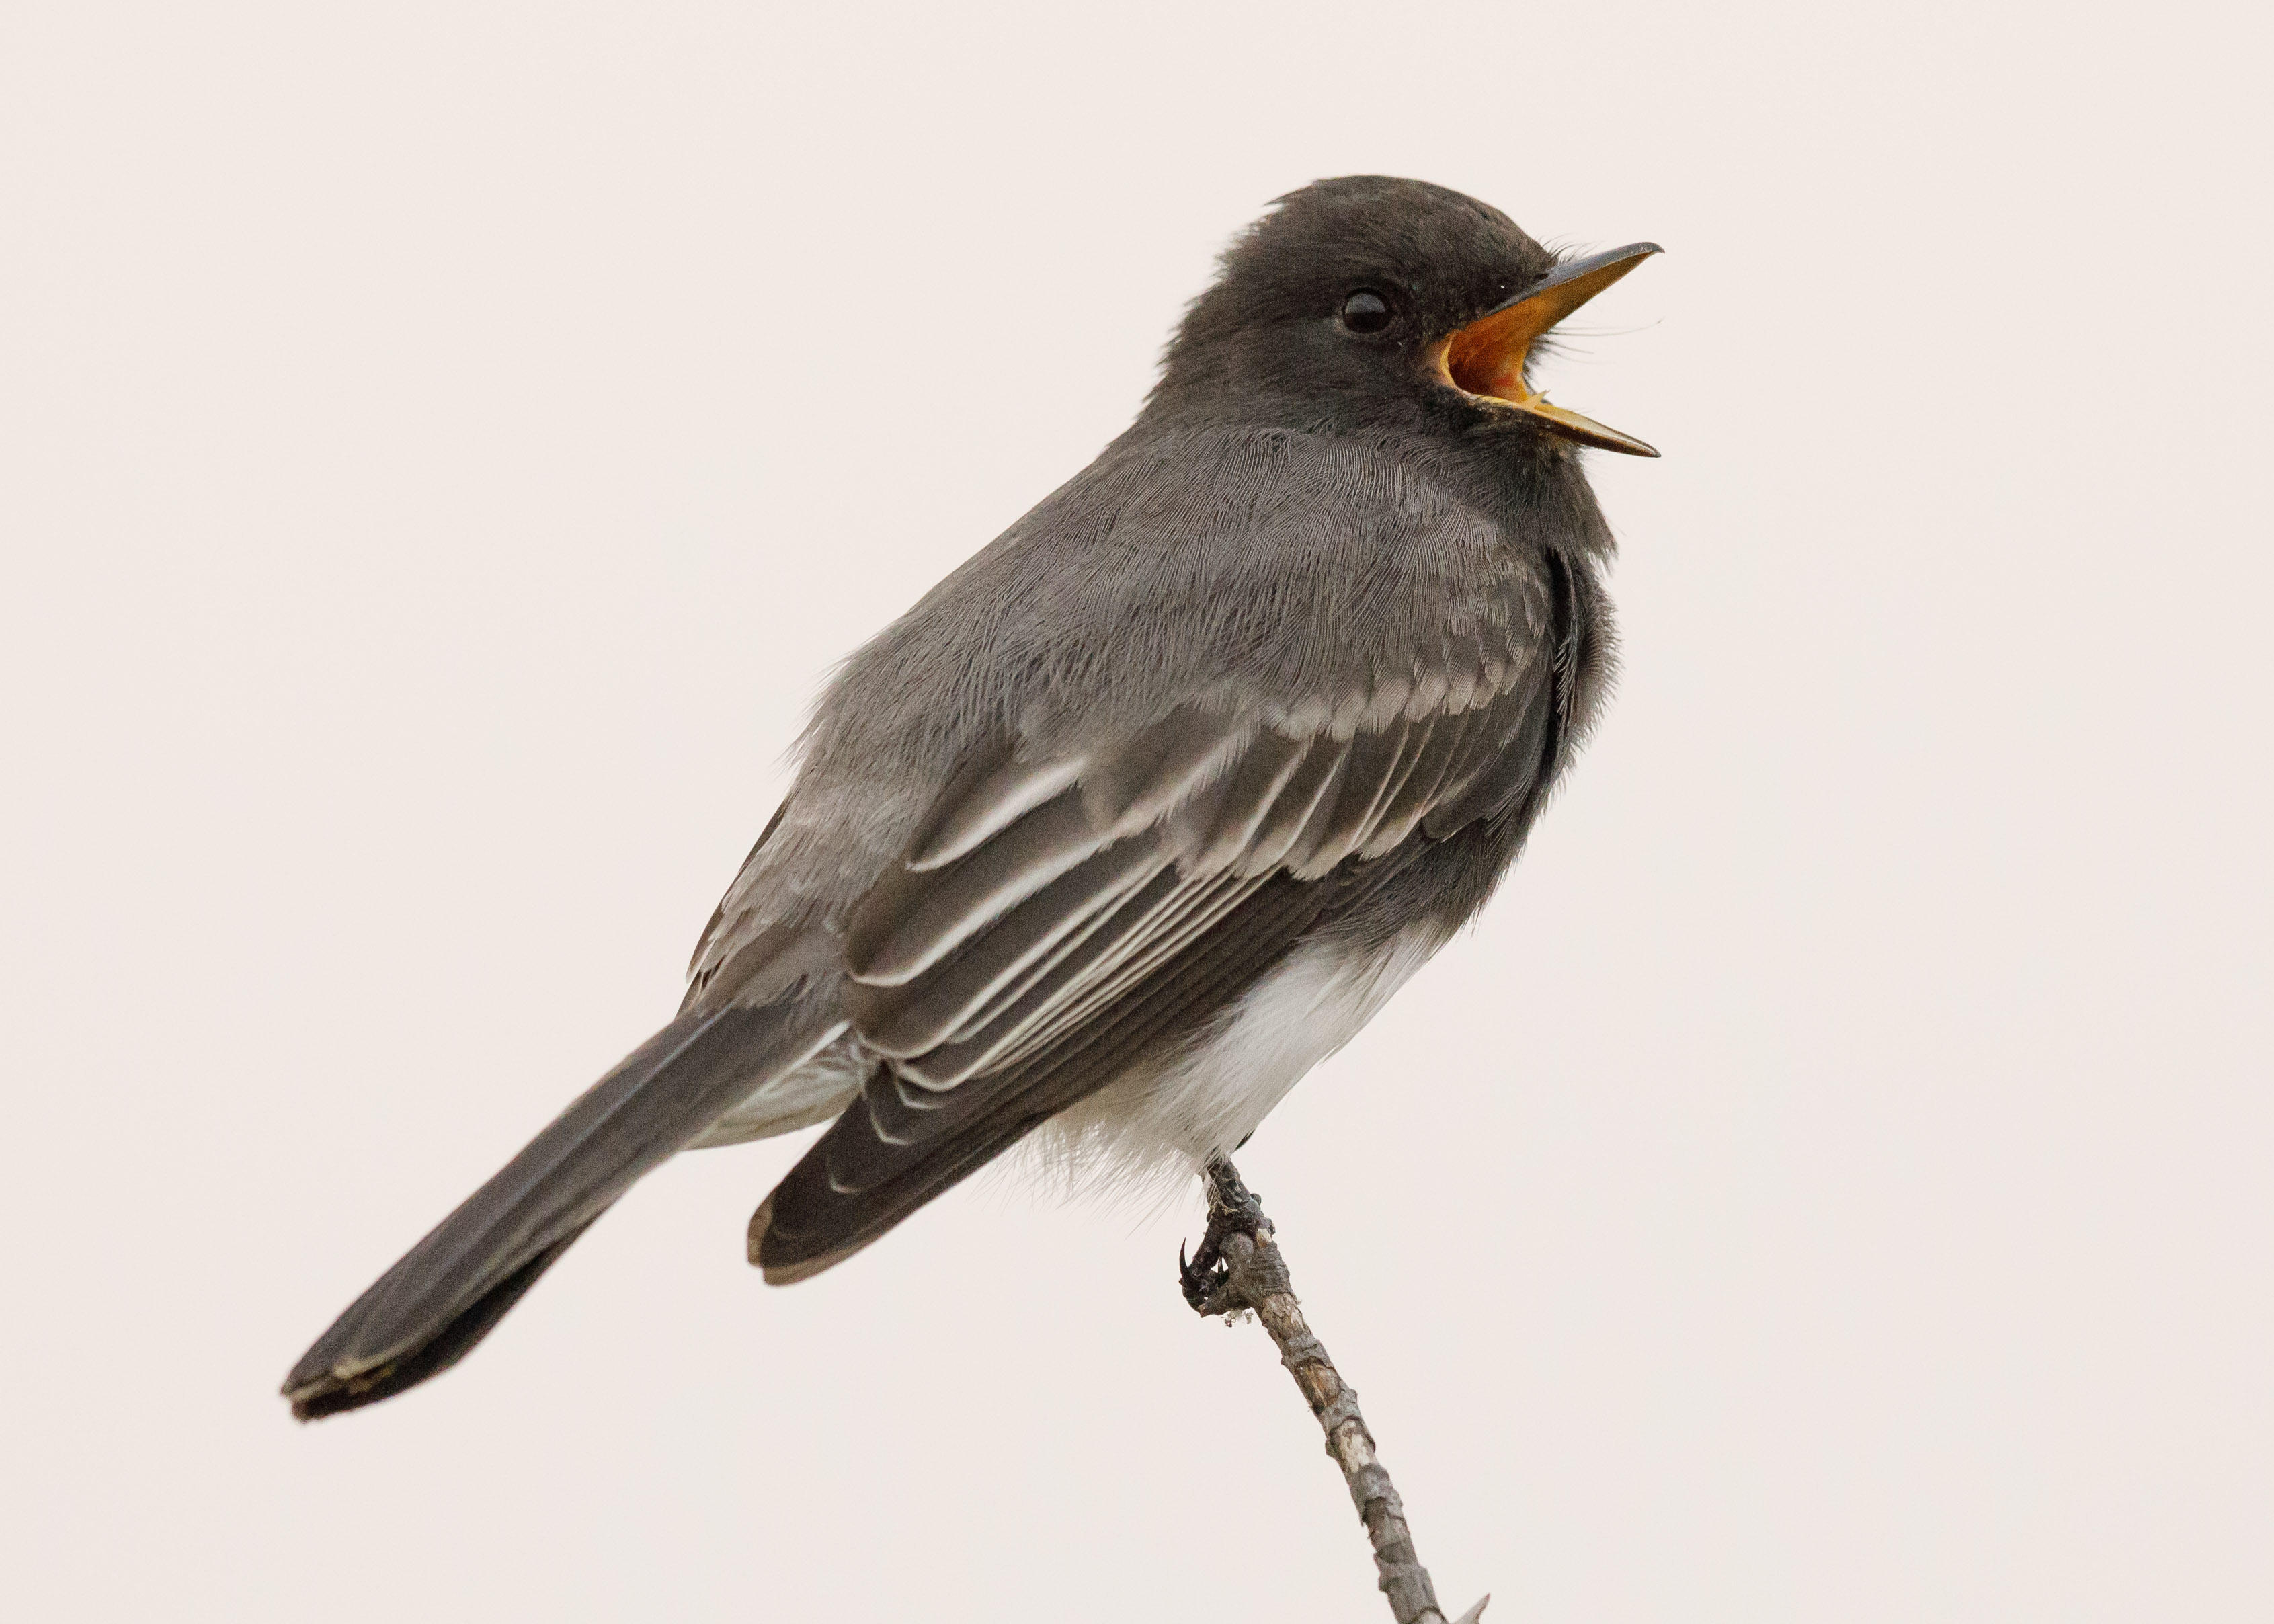 A black phoebe, a type of flycatcher, sings in the morning in Palo Alto, California.